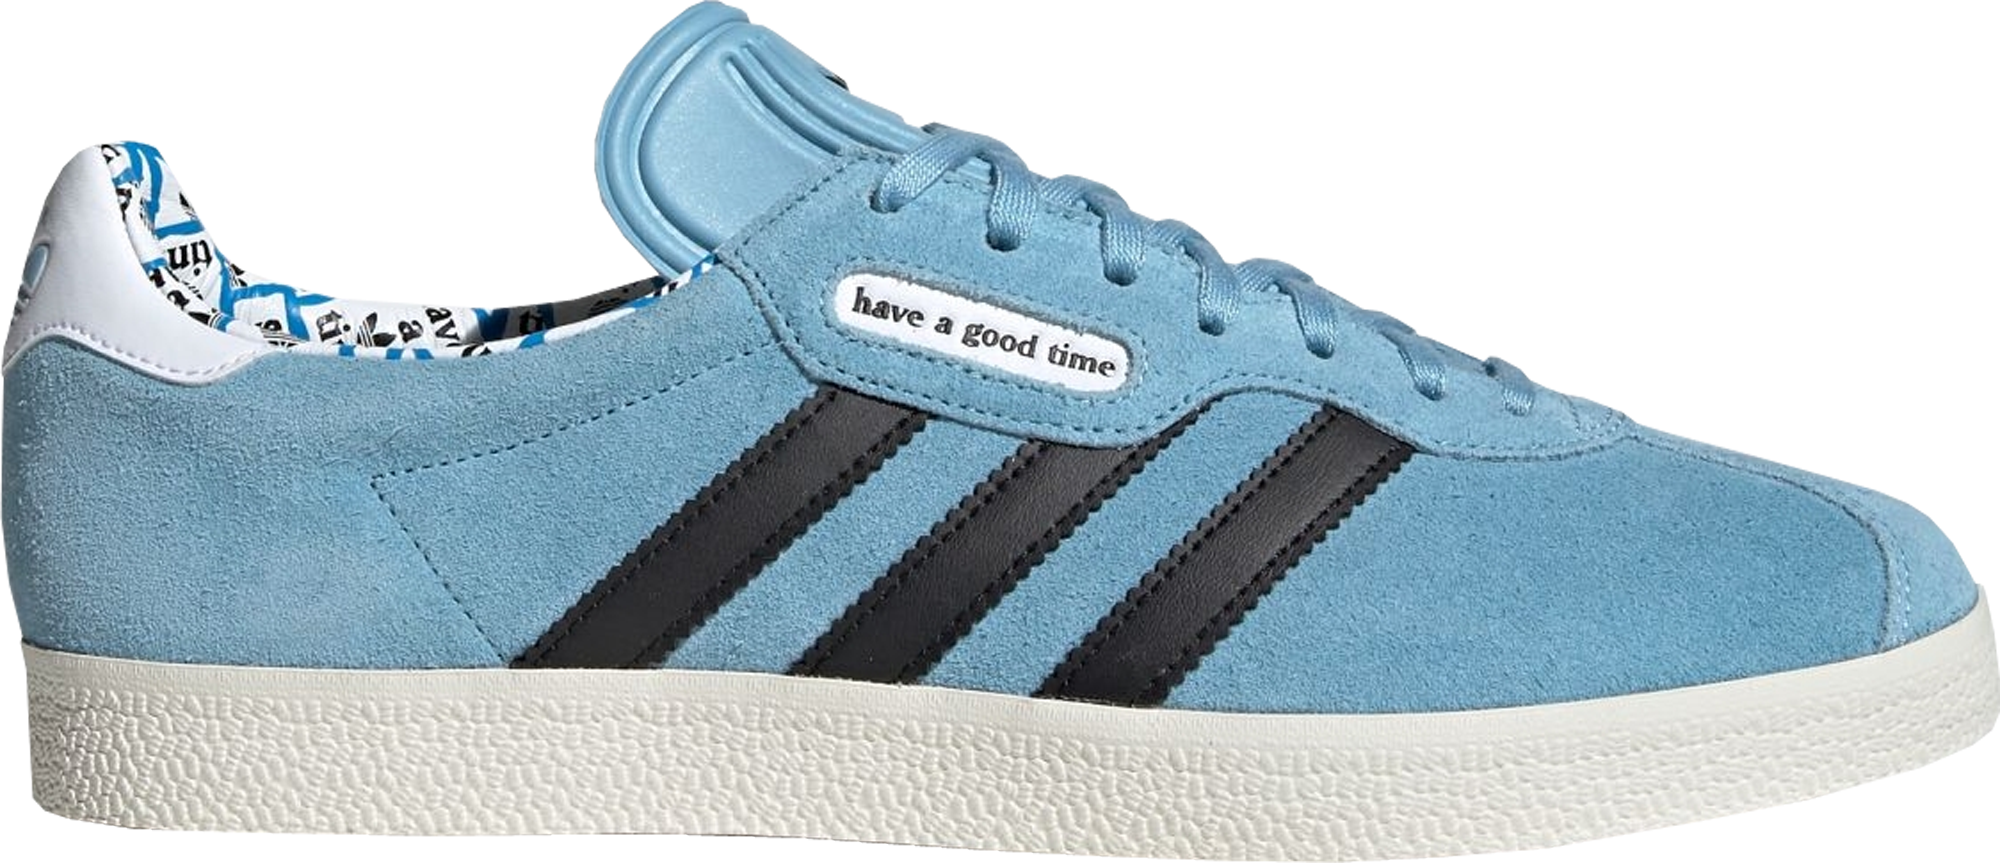 adidas Gazelle Super Have A Good Time